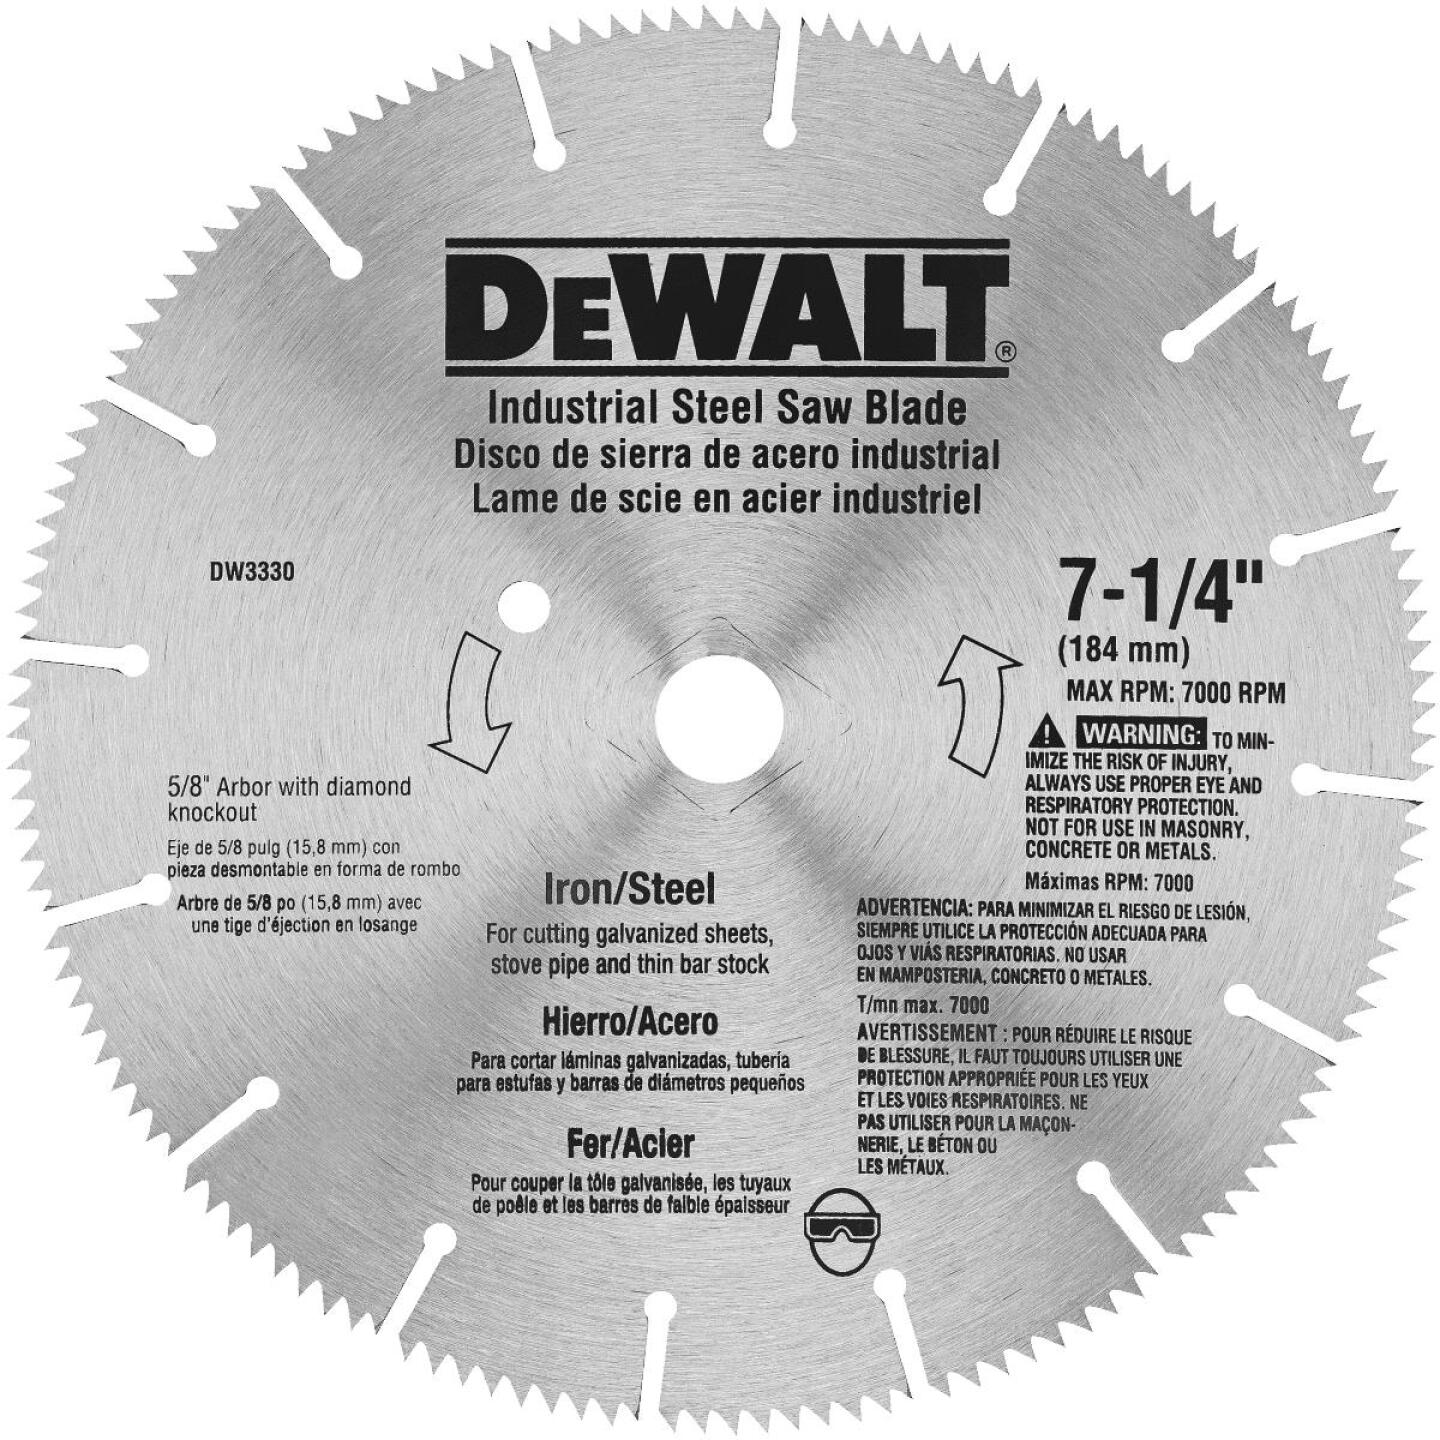 DeWalt Industrial Steel 7-1/4 In. 128-Tooth Iron/Steel Circular Saw Blade Image 1